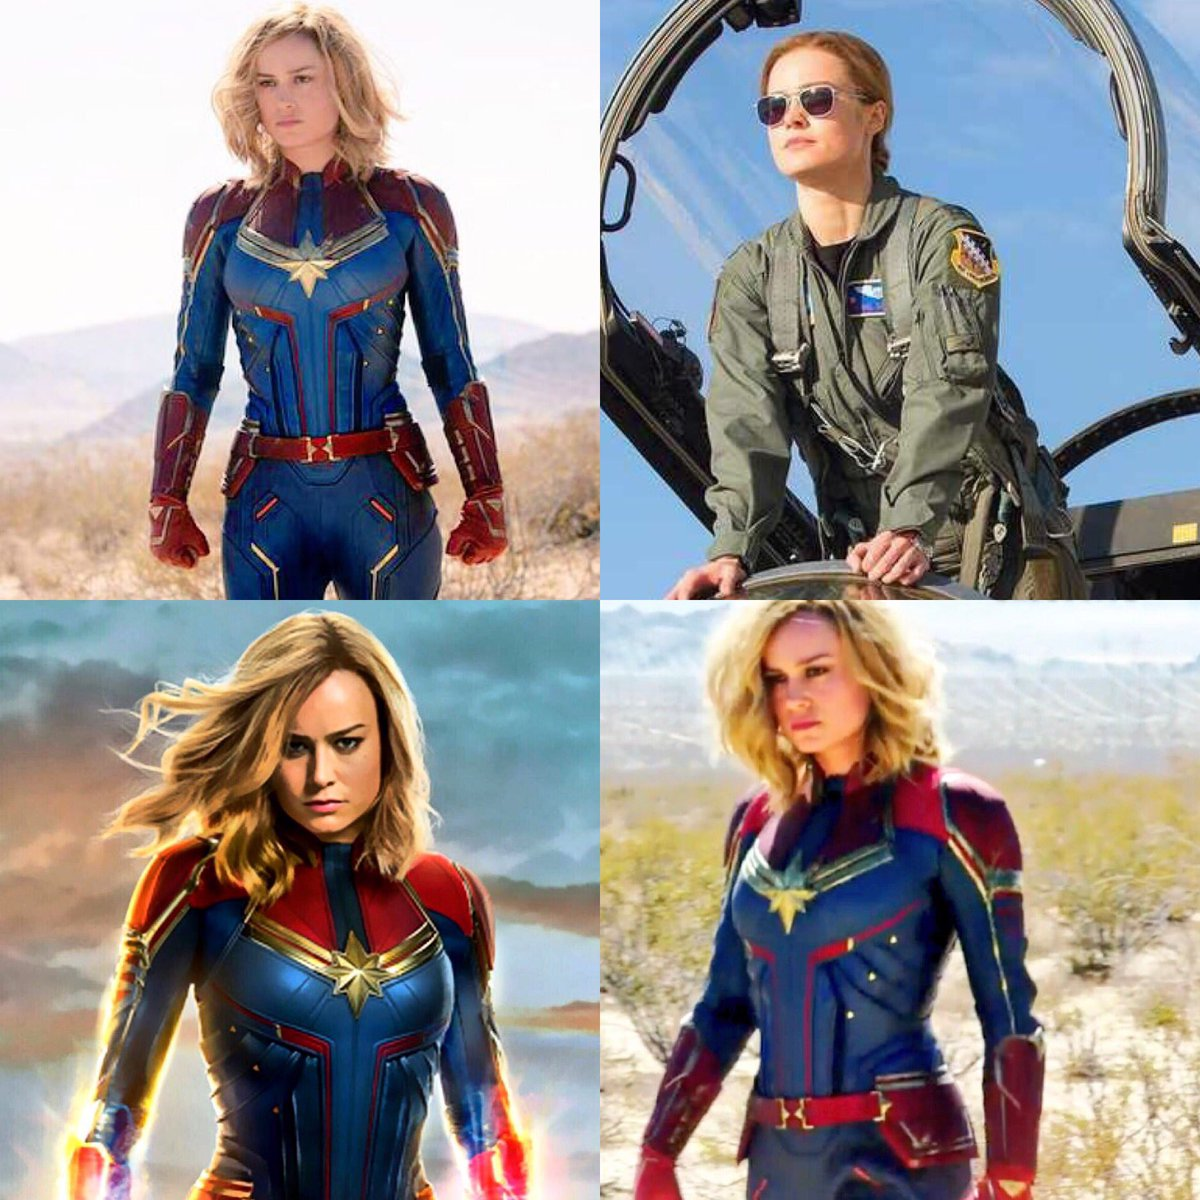 Captain Marvel News On Twitter Ace Air Force Pilot Carol Danvers Is Already A Hero To Many And When She S Suited Up For Her Other Job As Earth S Mightiest Hero Captain Warriors can be formed for any reason, whether it be a king's responsibility, a soldier's duty, or a hired gun's price. twitter